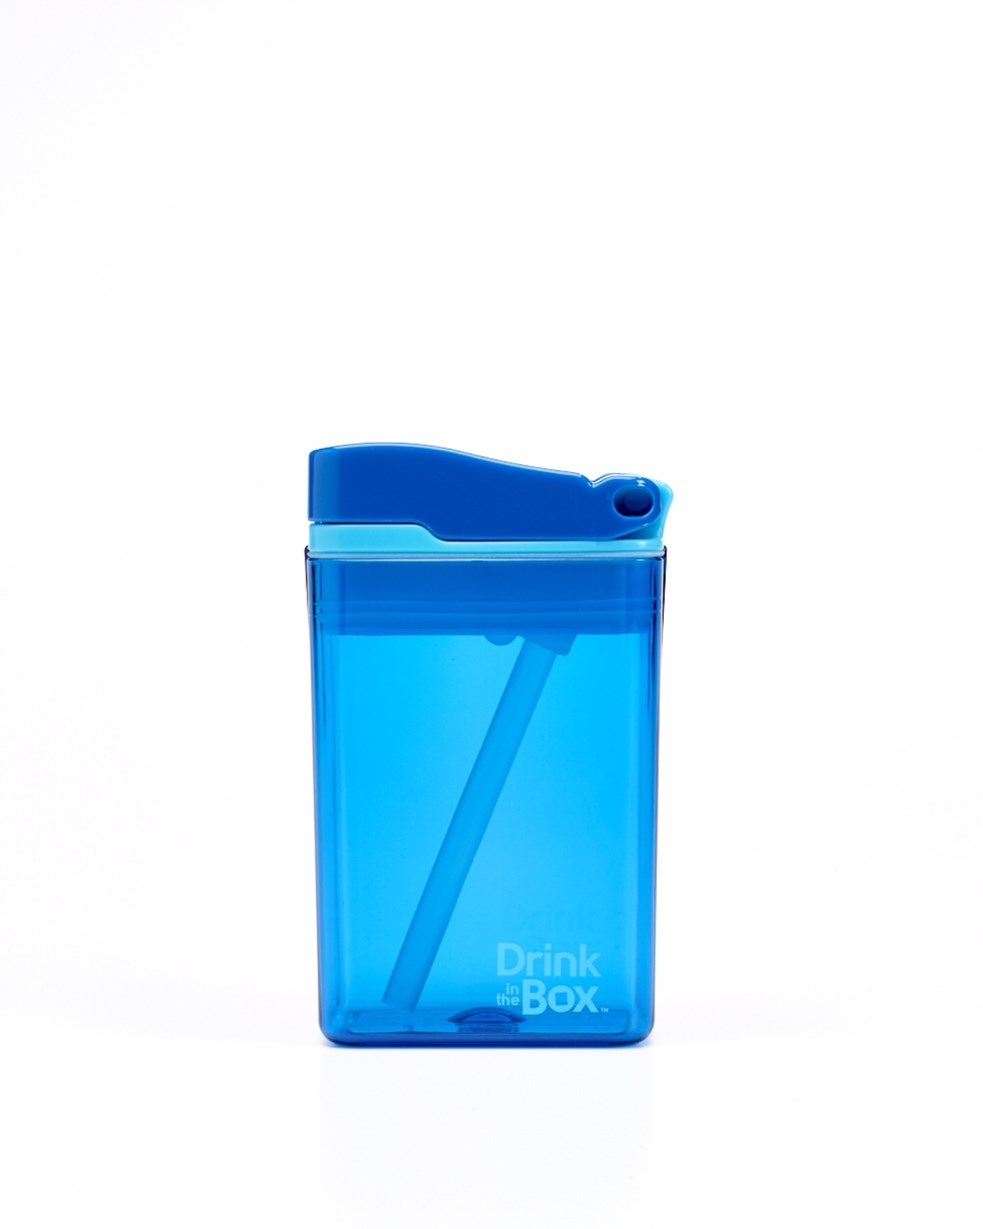 Drink in The Box 8oz / 235mL - Blue